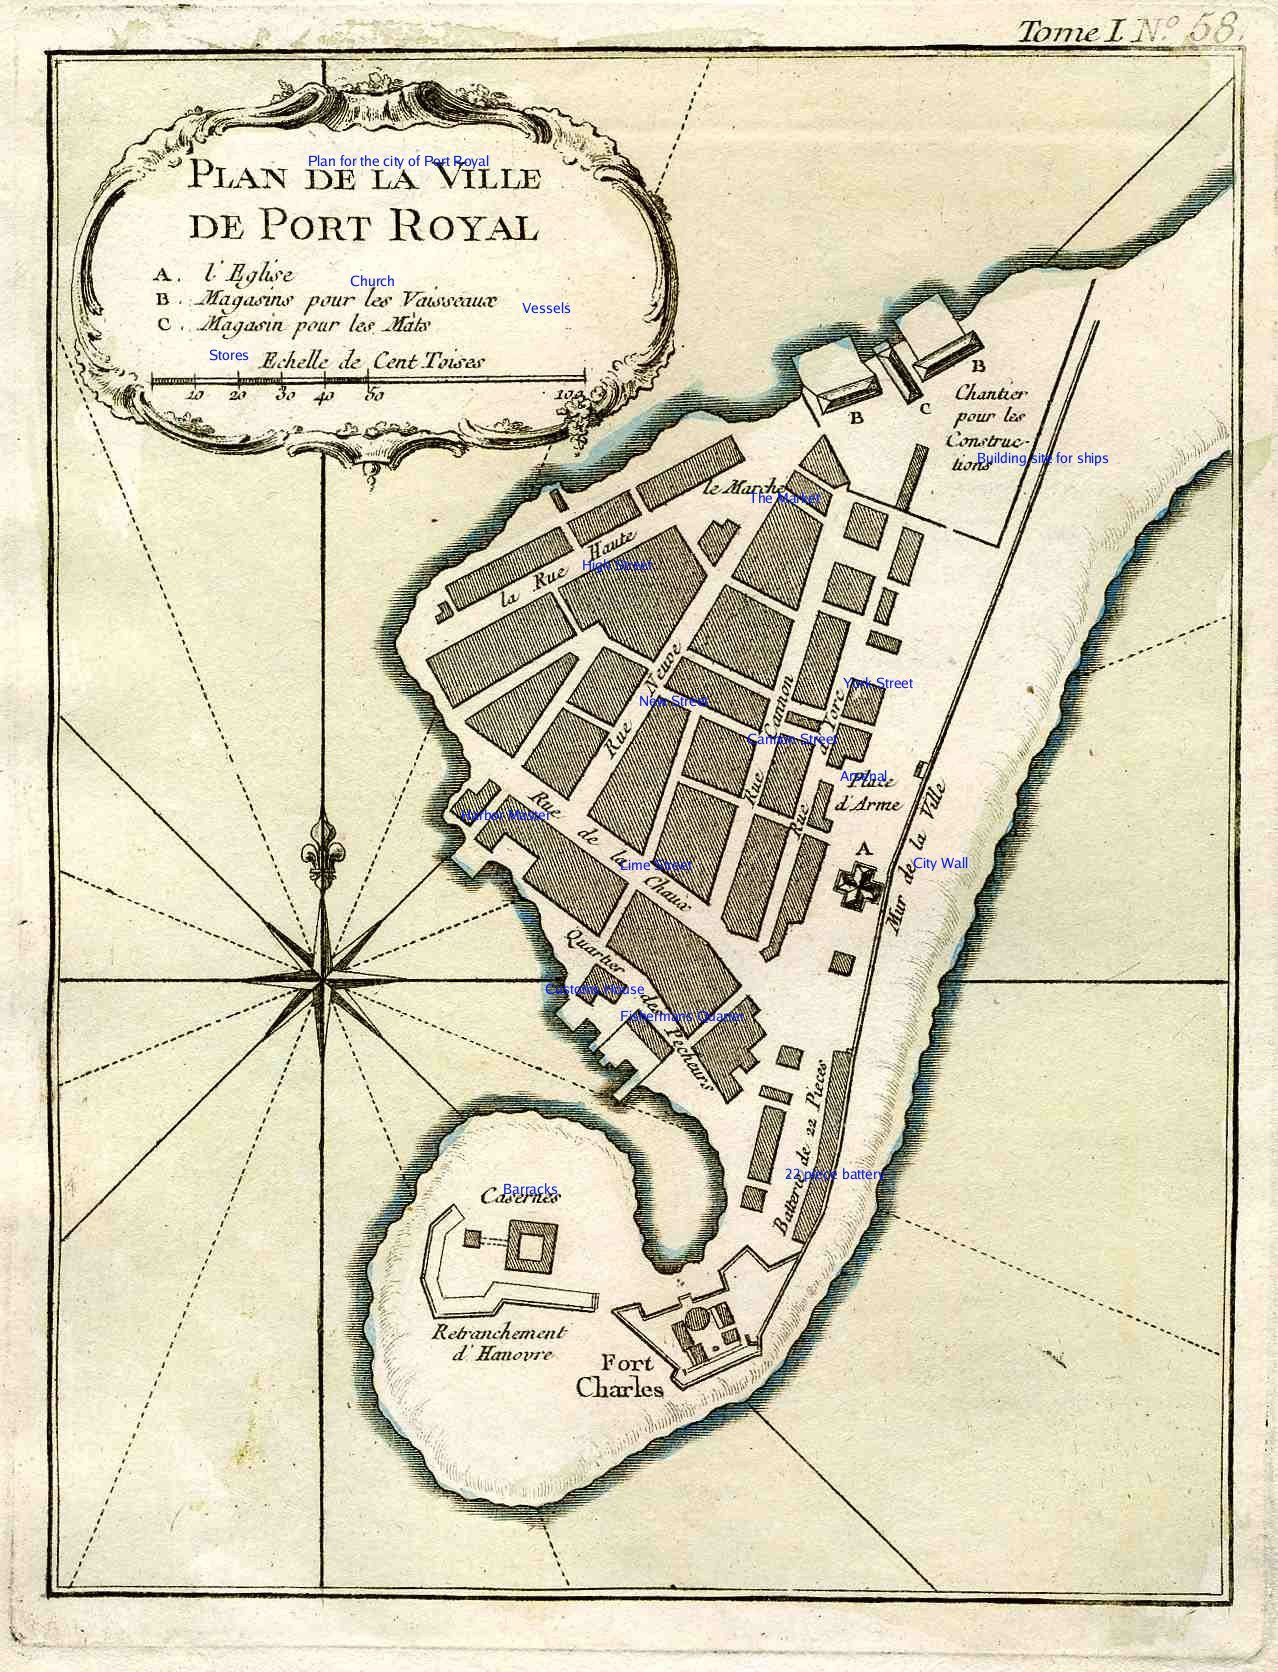 The town of Port Royal with English edits